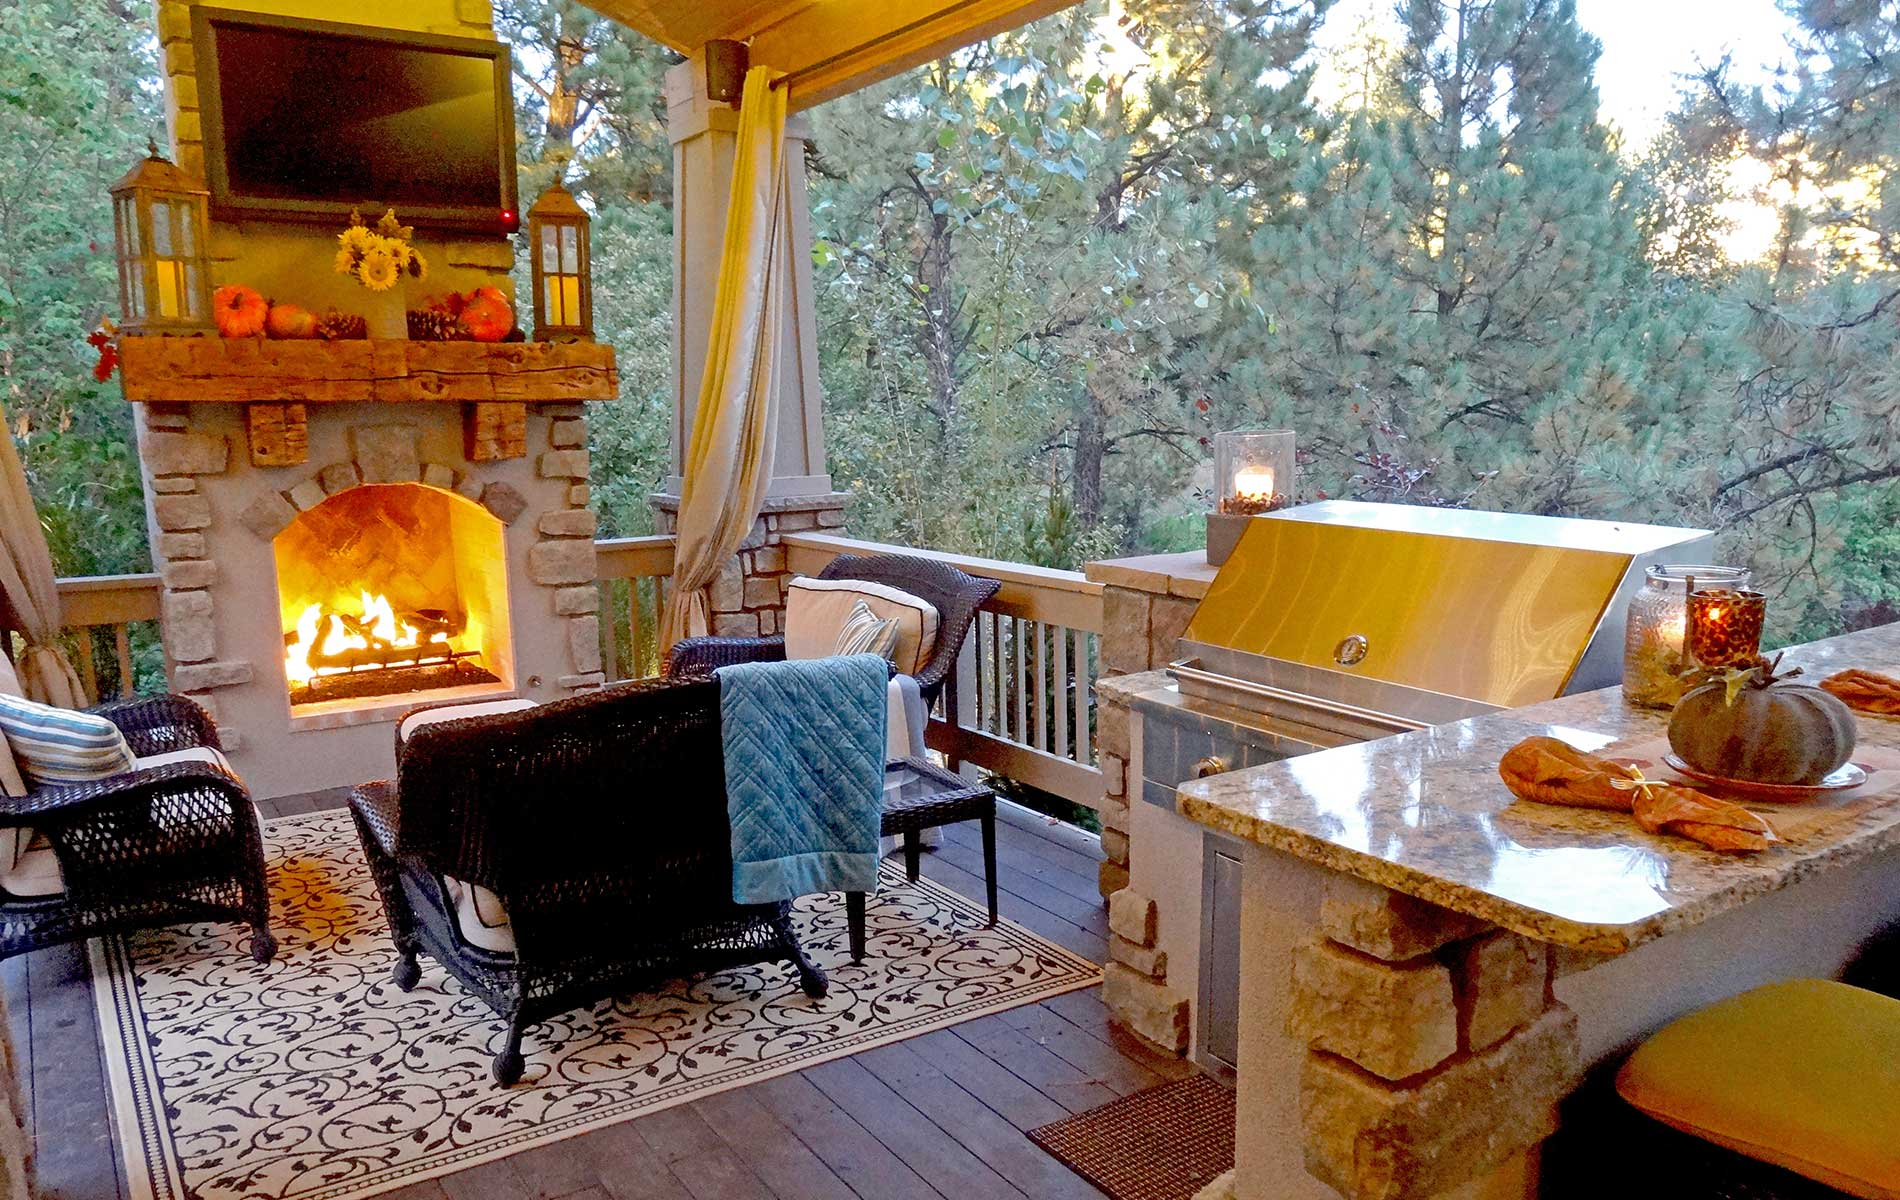 Stunning Cozy All-Weather Outdoor Room In Castle Pines